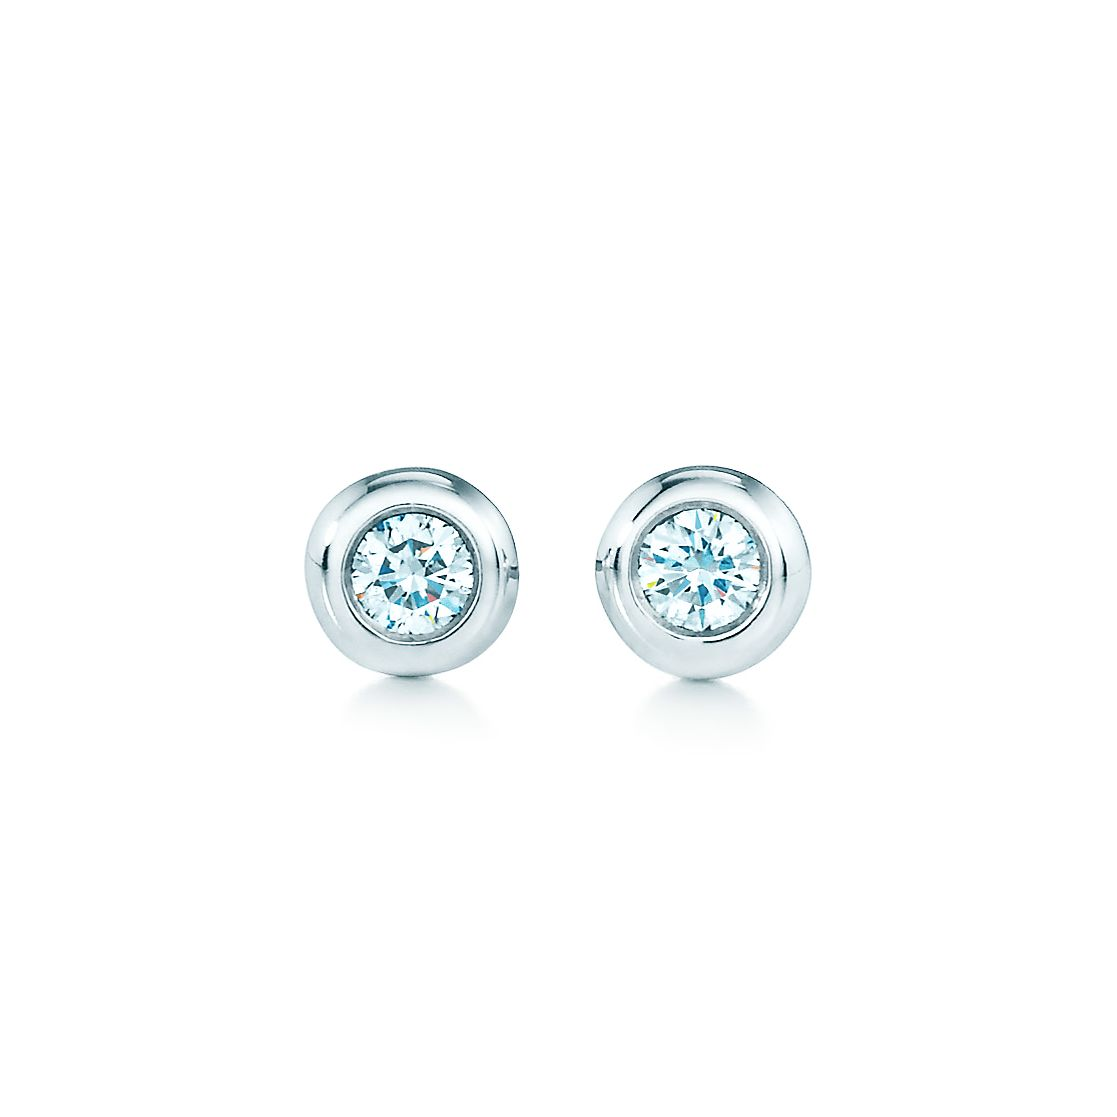 jewellery earrings diamondland carat jewelry diamond